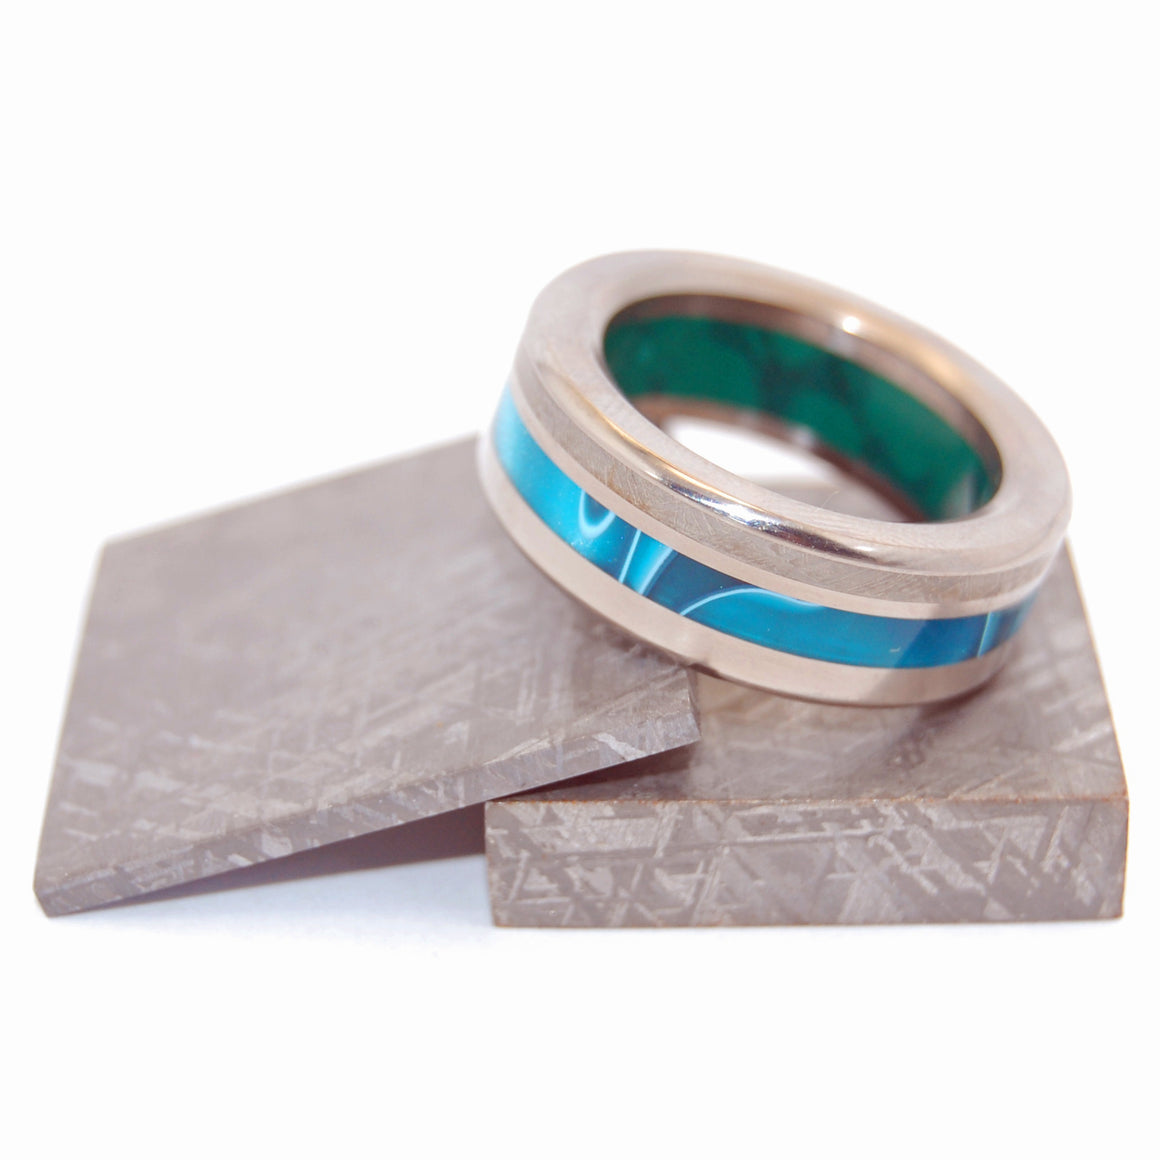 GO BOLD OR GO HOME | Meteorite & Jade Stone & Aquatic Blue Resin Unique Wedding Rings - Minter and Richter Designs